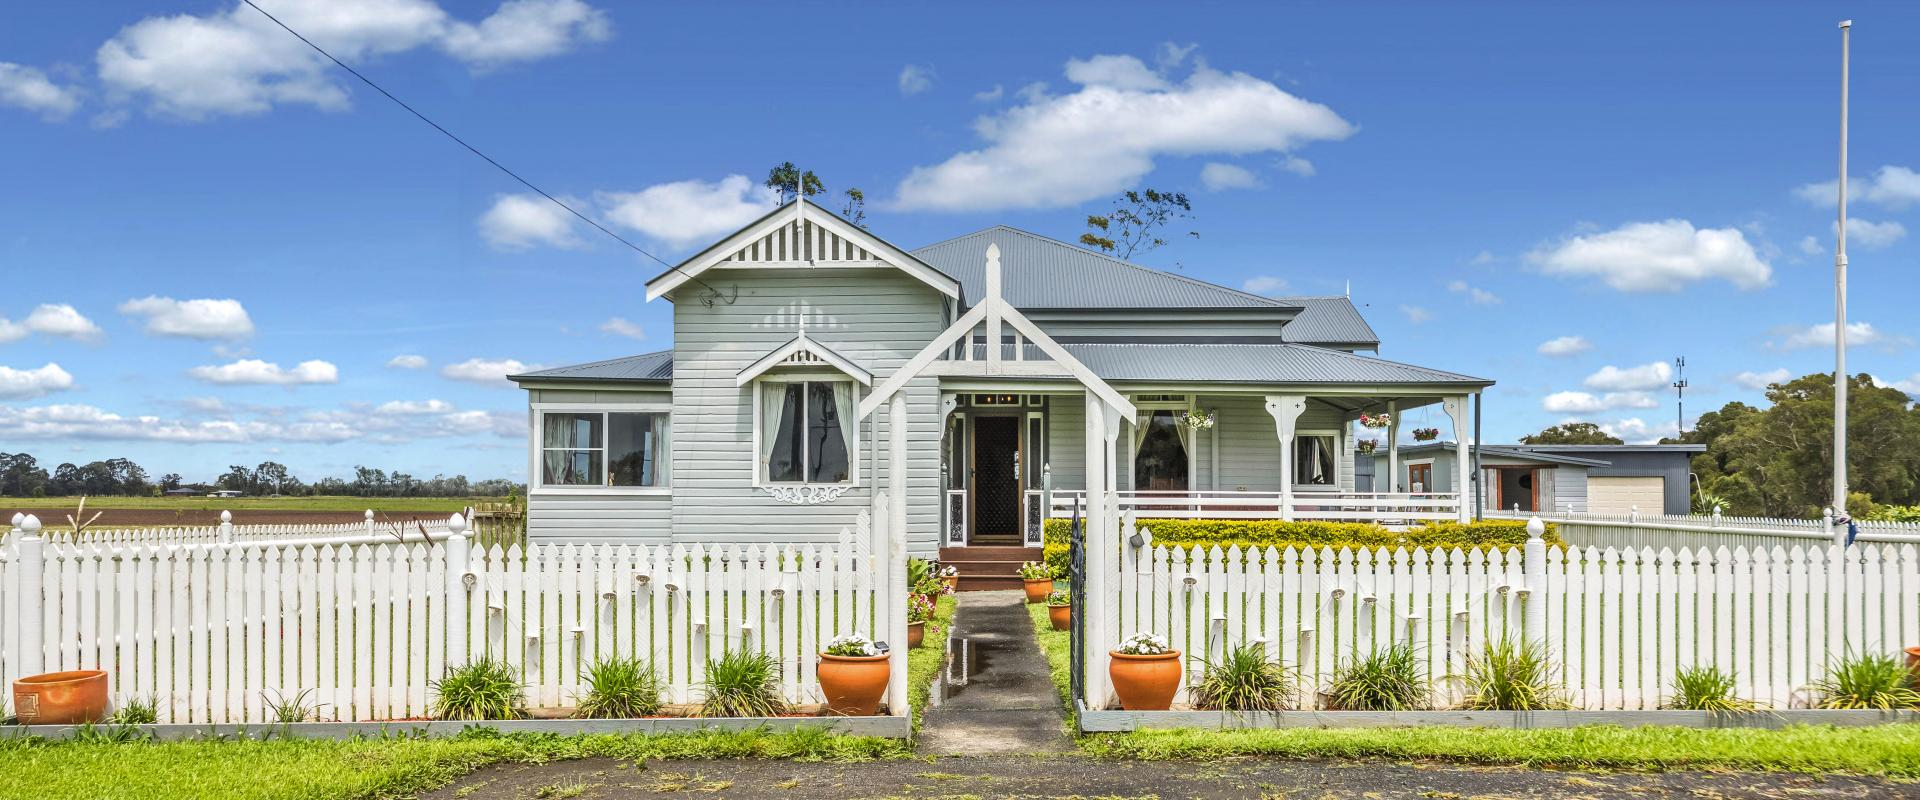 SOLD BY ROBYN HUNT